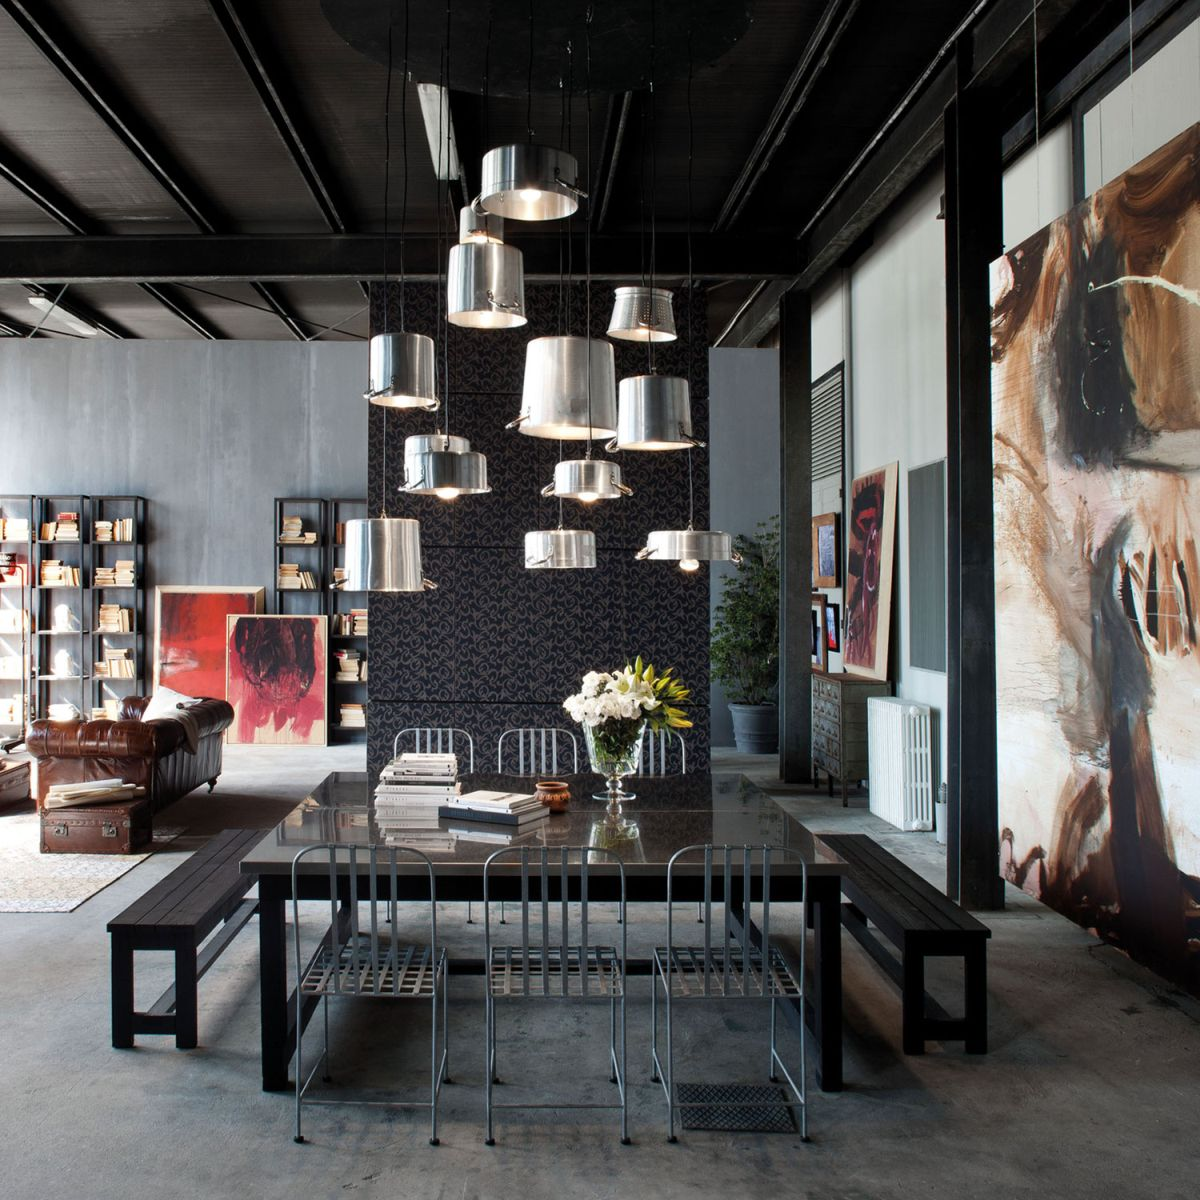 Loft Micassiolo in Milan dining area lighting